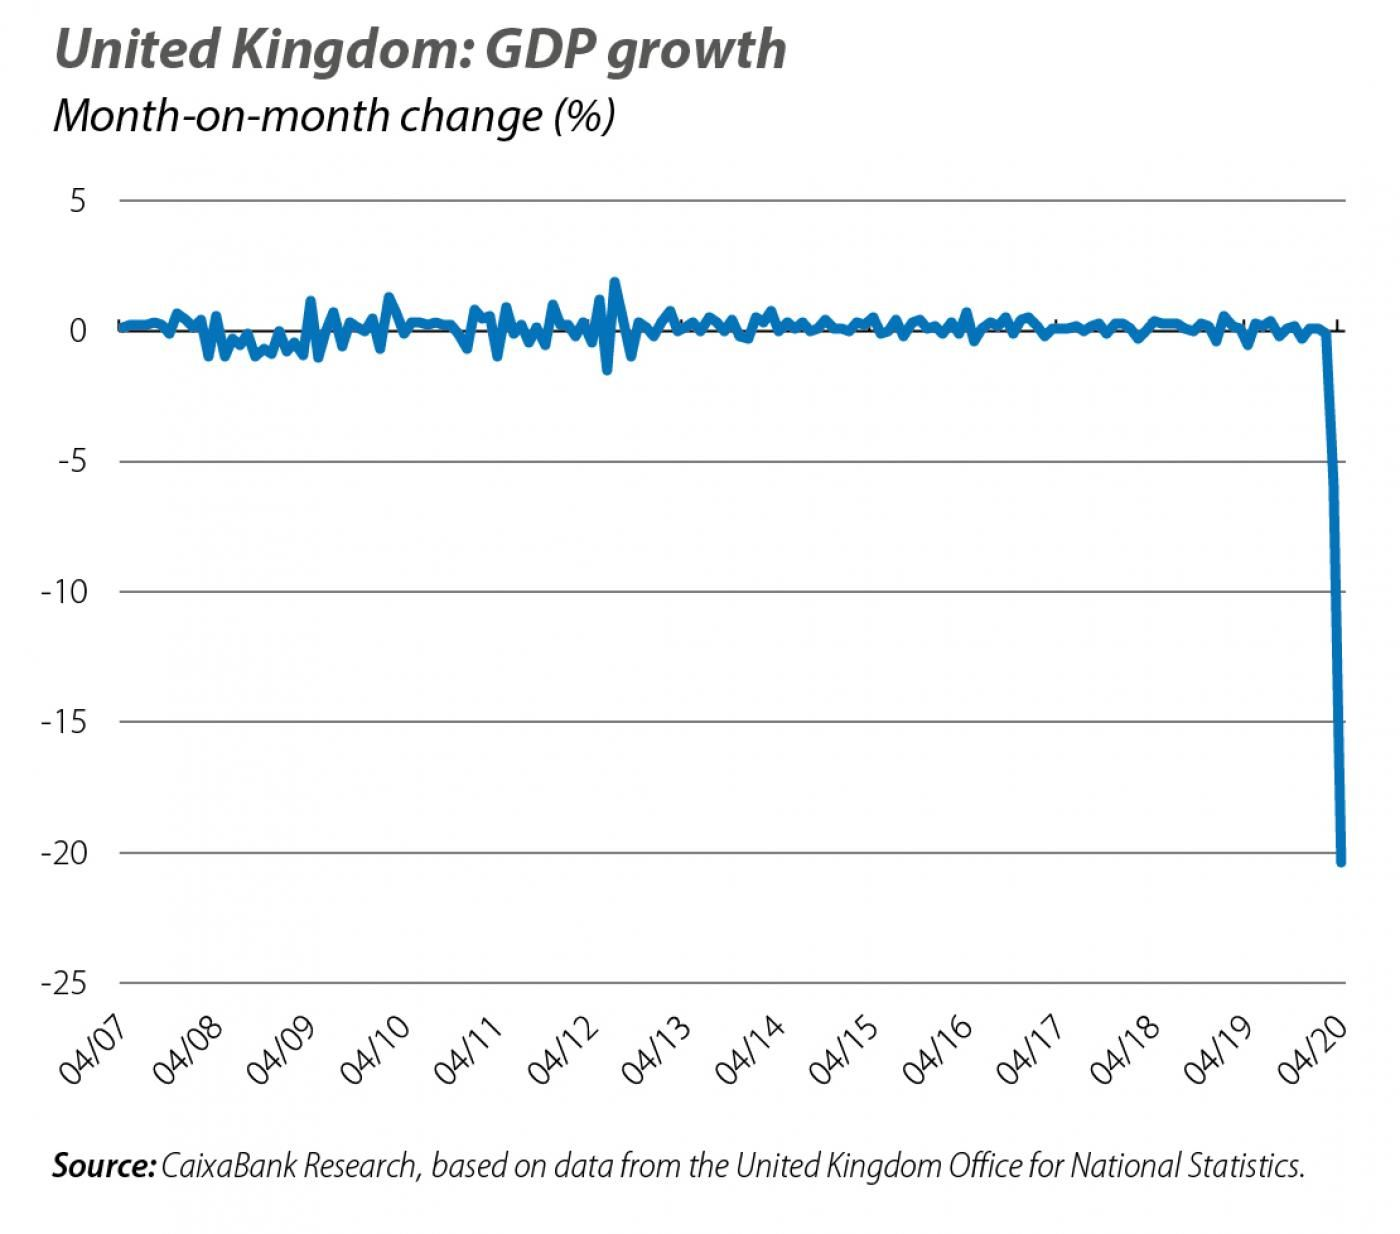 United Kingdom: GDP growth